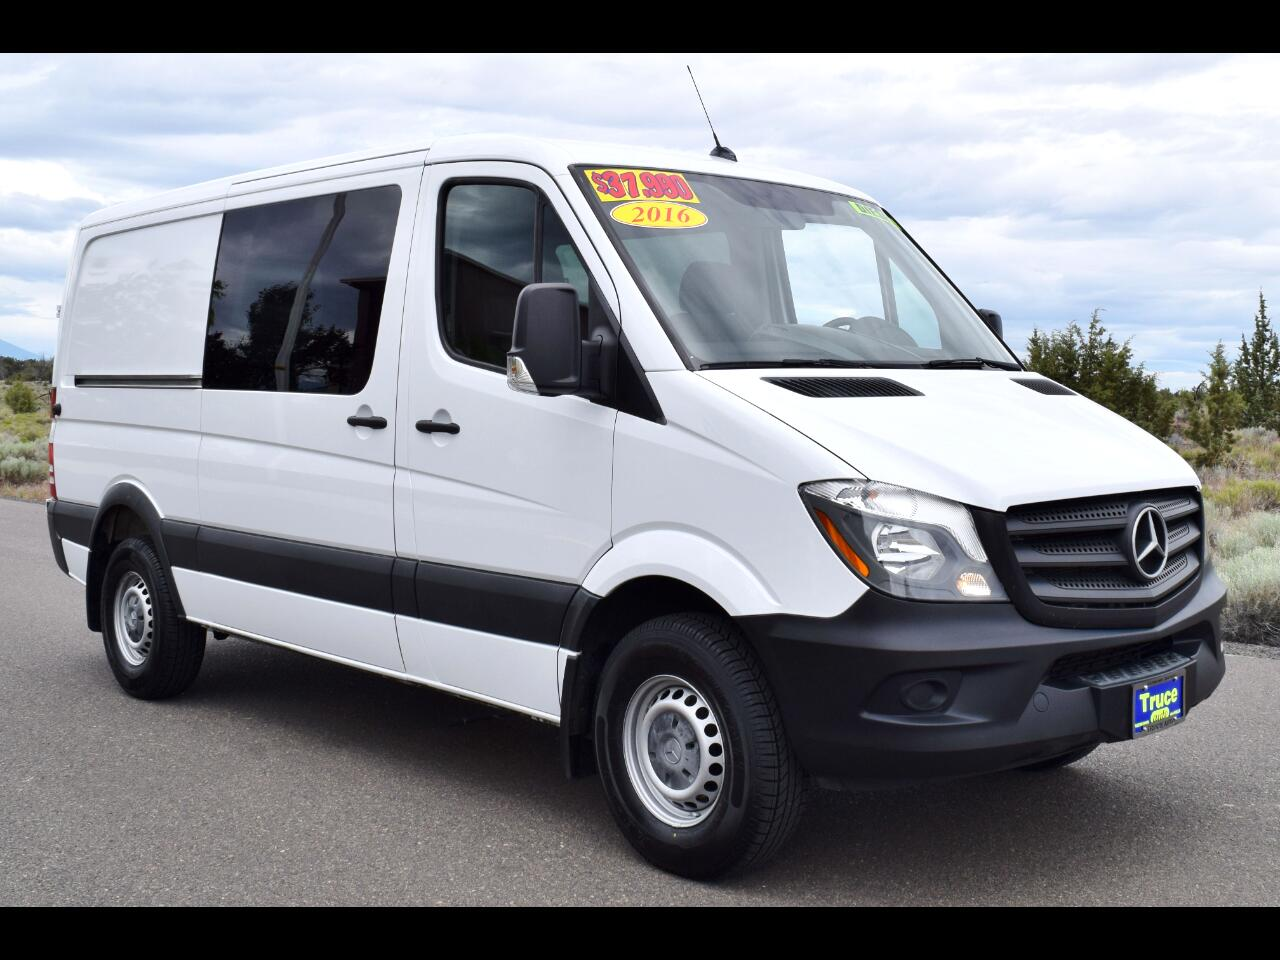 Mercedes-Benz Sprinter Vans  2016